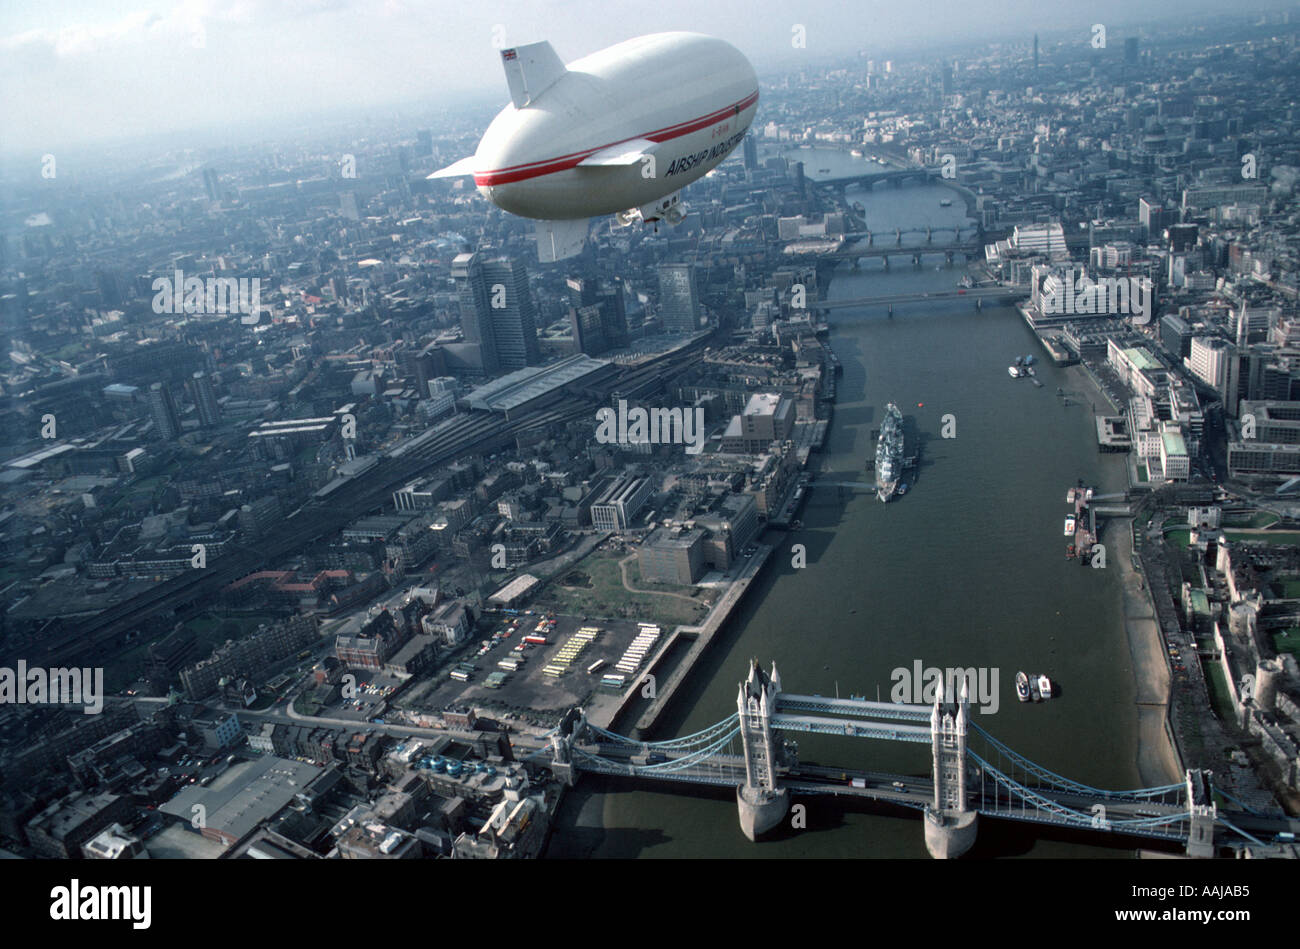 Aerial view of airship over London Stock Photo